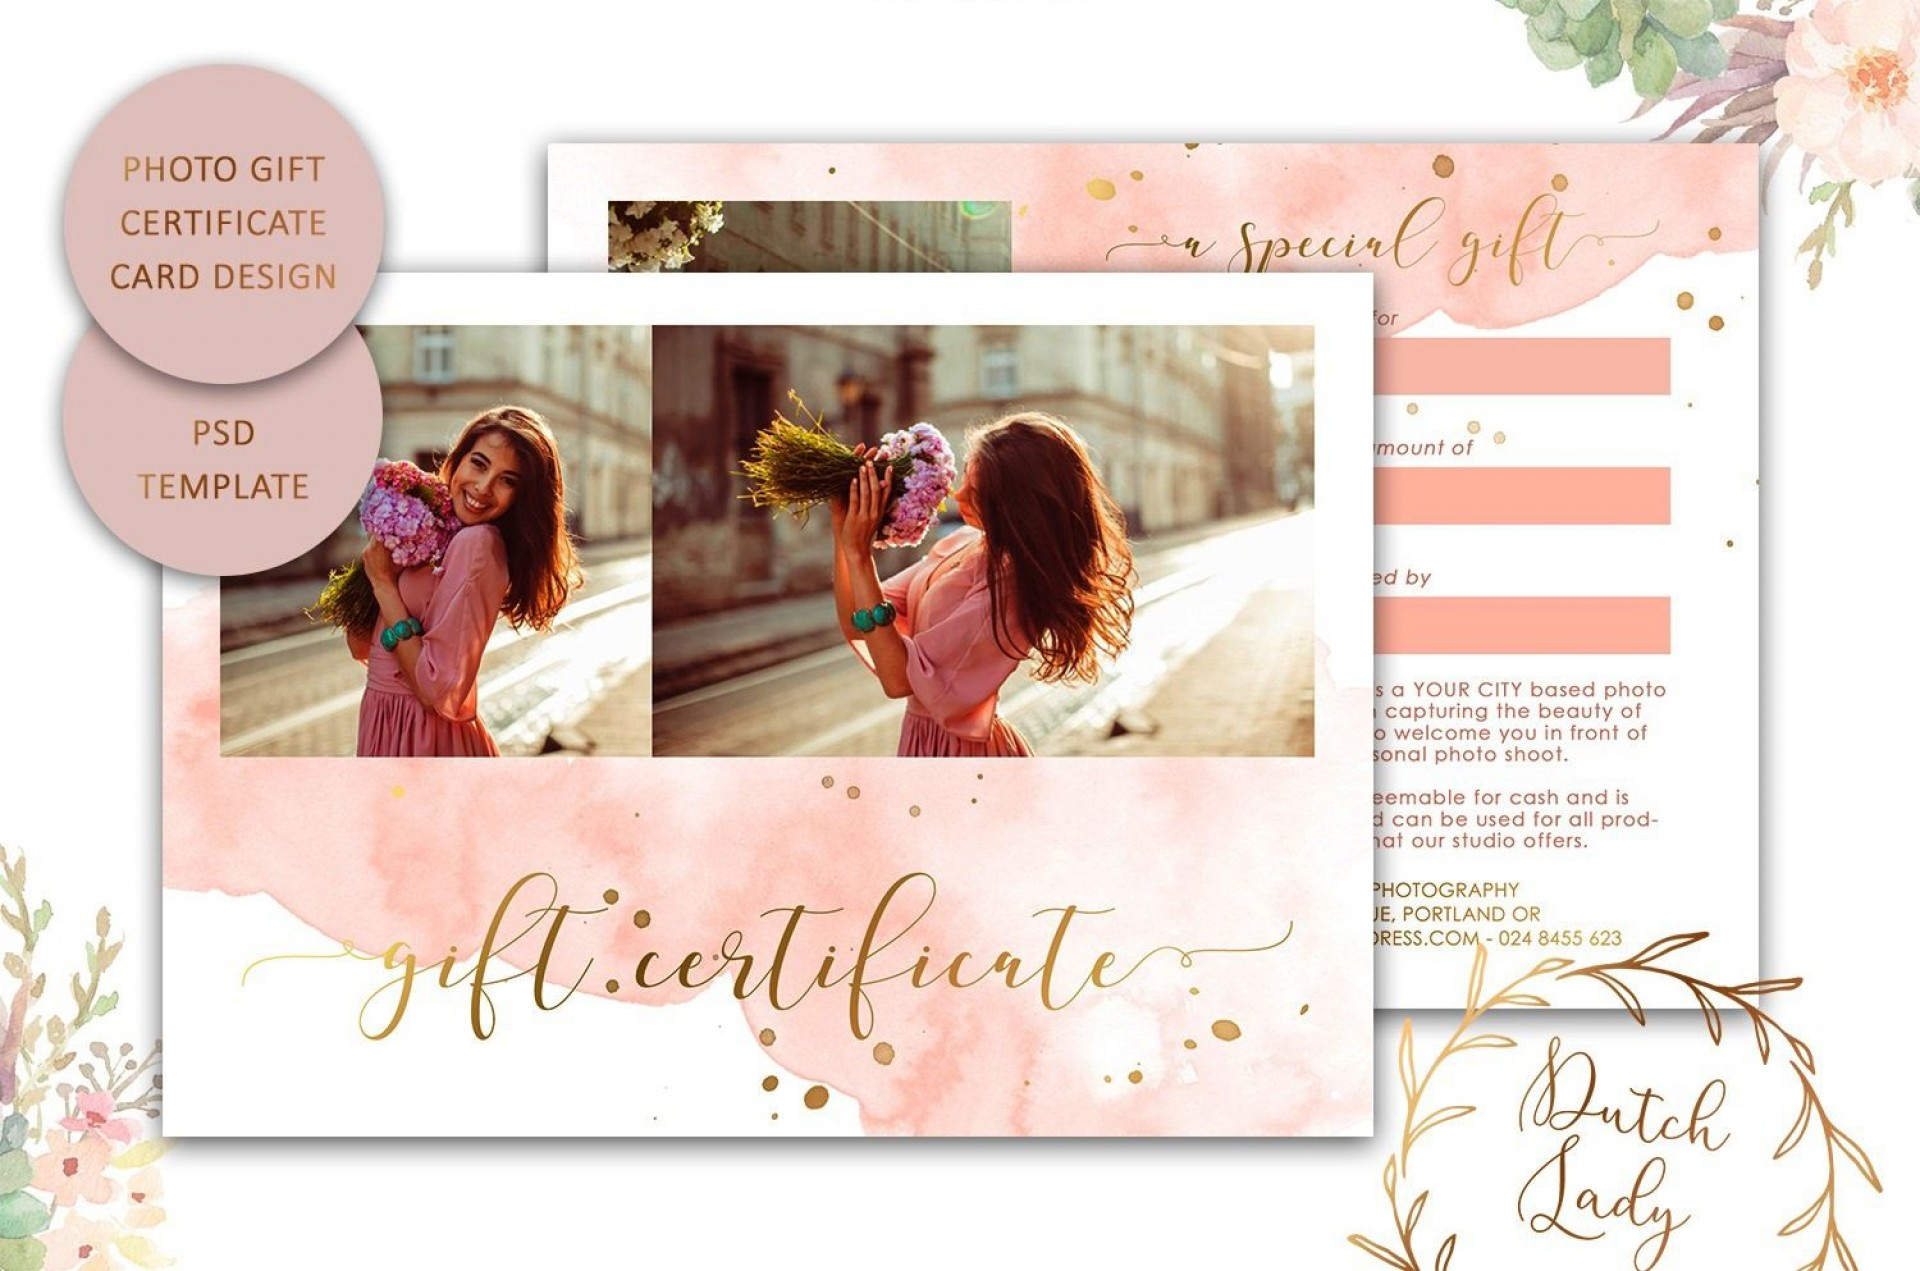 008 Stupendou Photography Gift Certificate Template Photoshop Free Idea 1920